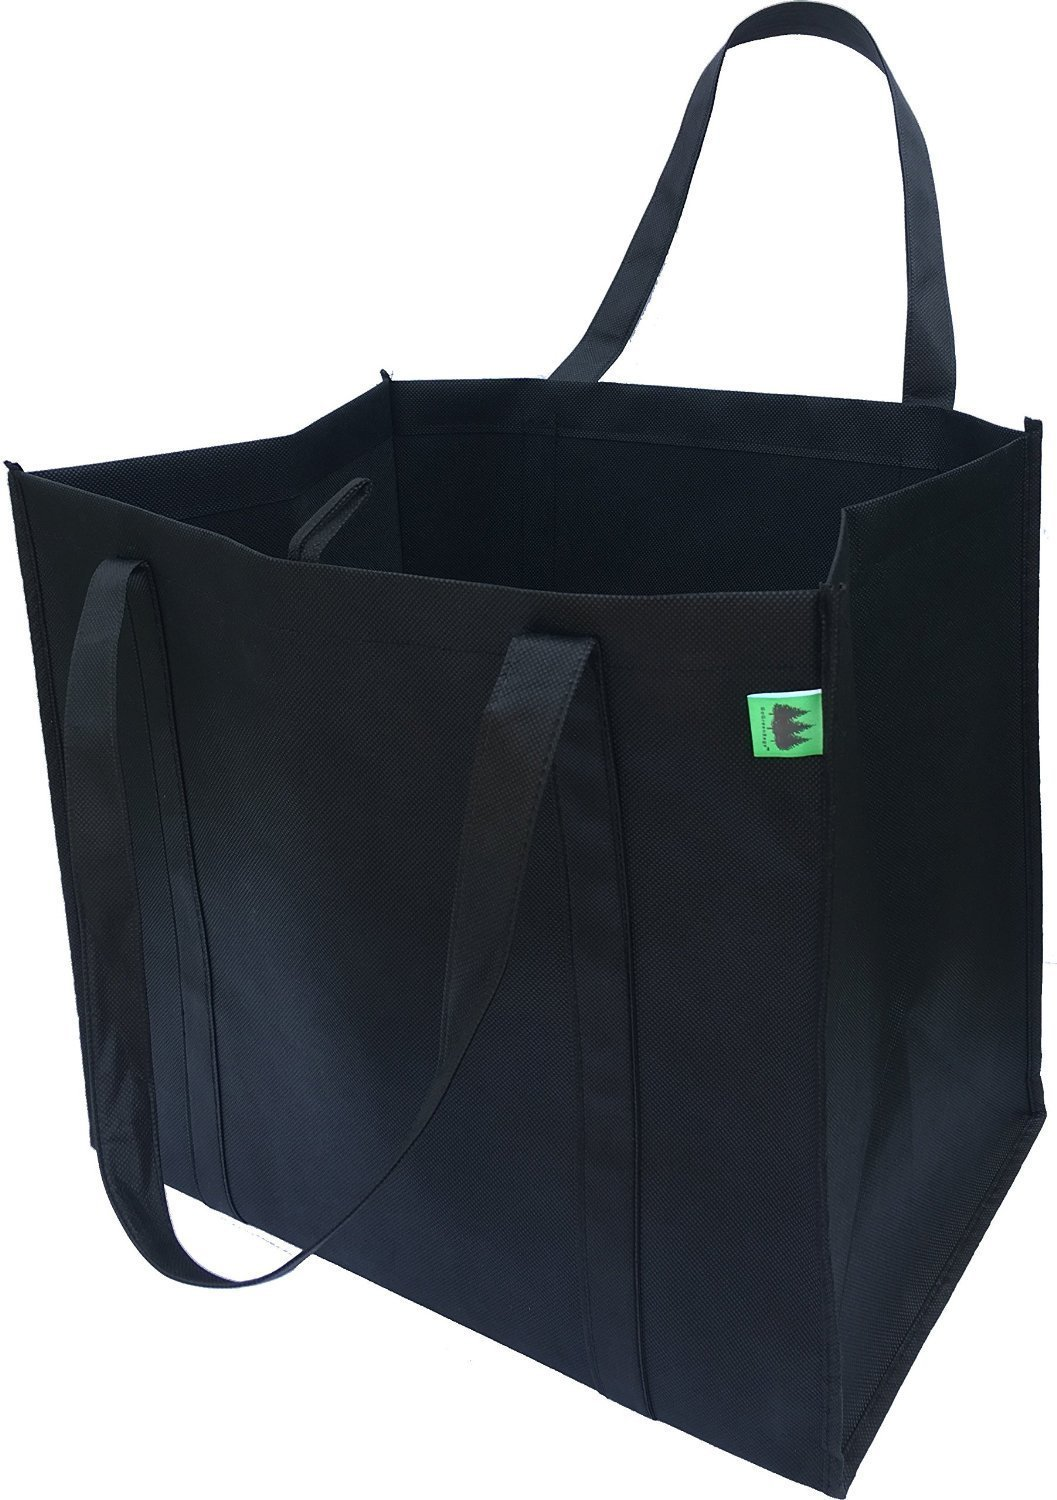 best reusable grocery shopping bags grocery store near me. Black Bedroom Furniture Sets. Home Design Ideas